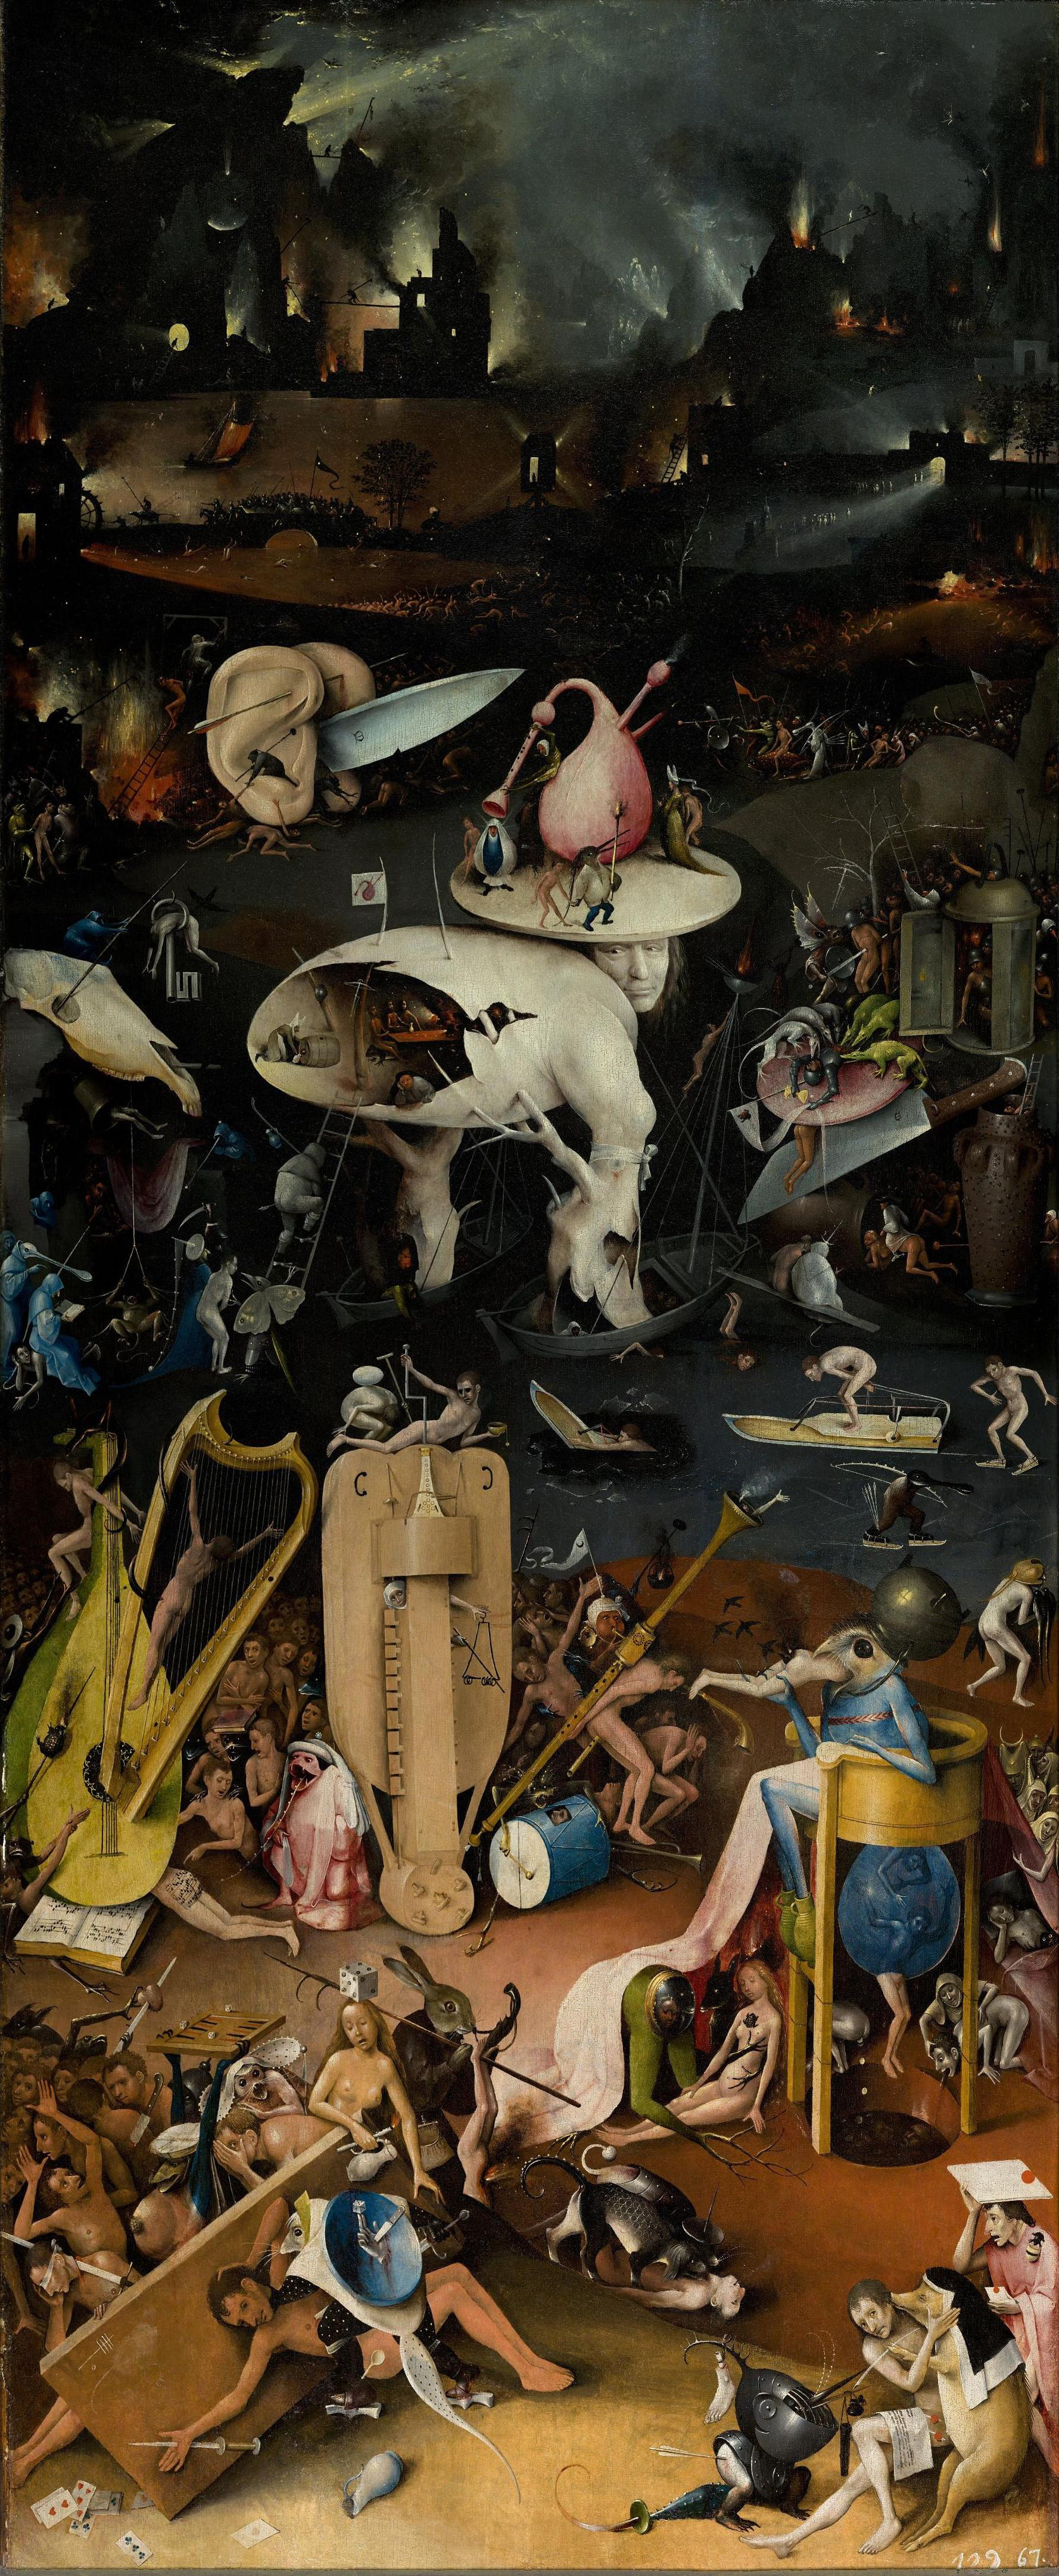 Hieronymus_Bosch_-_The_Garden_of_Earthly_Delights_-_Hell